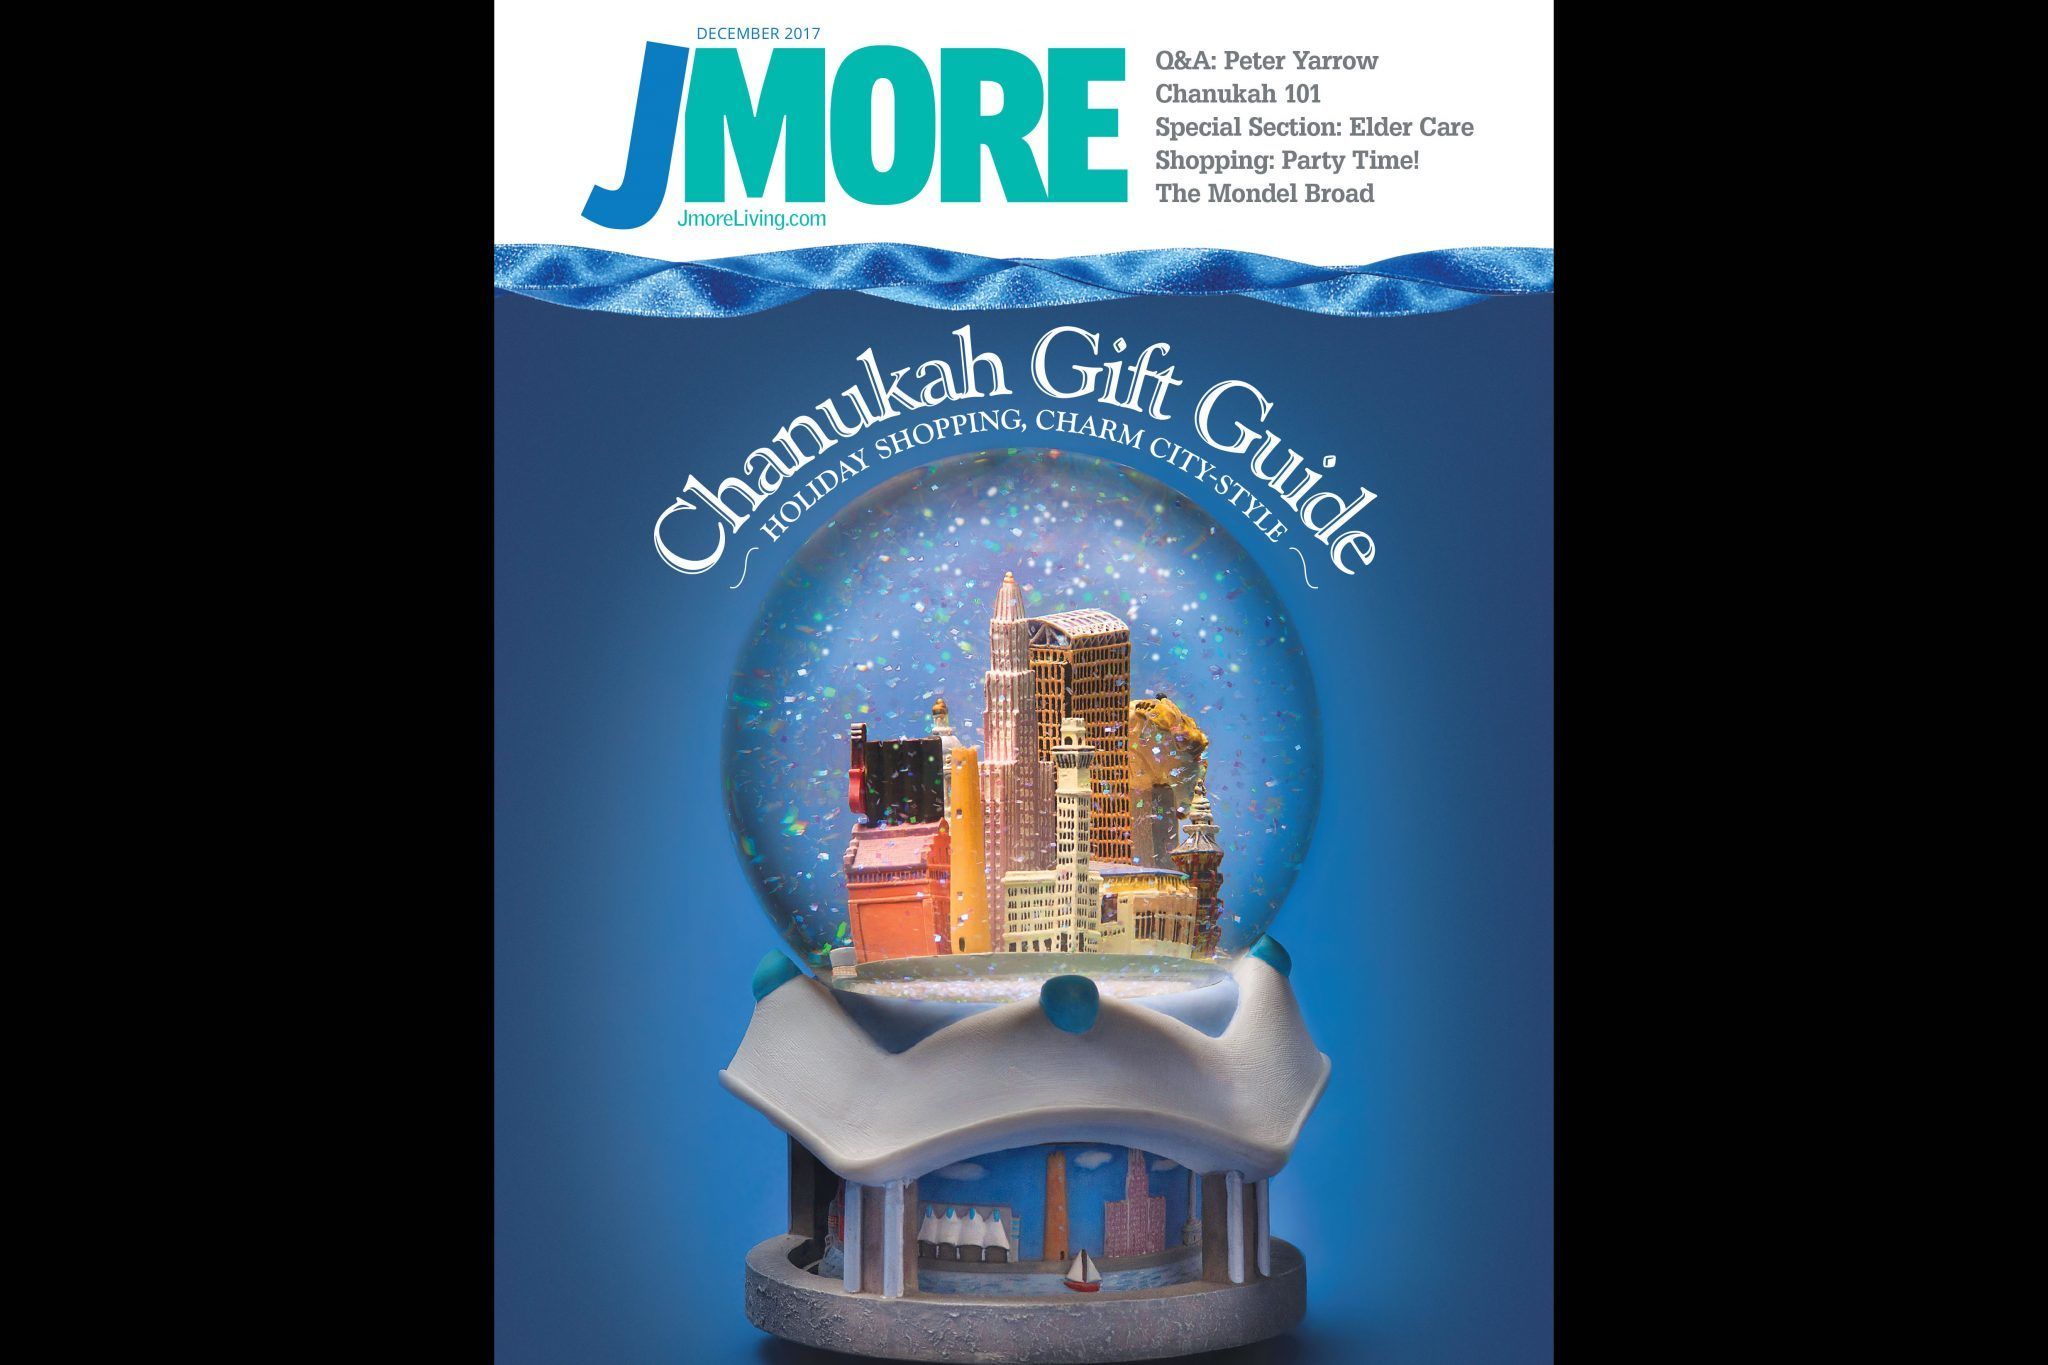 Jmore covers: December 2017